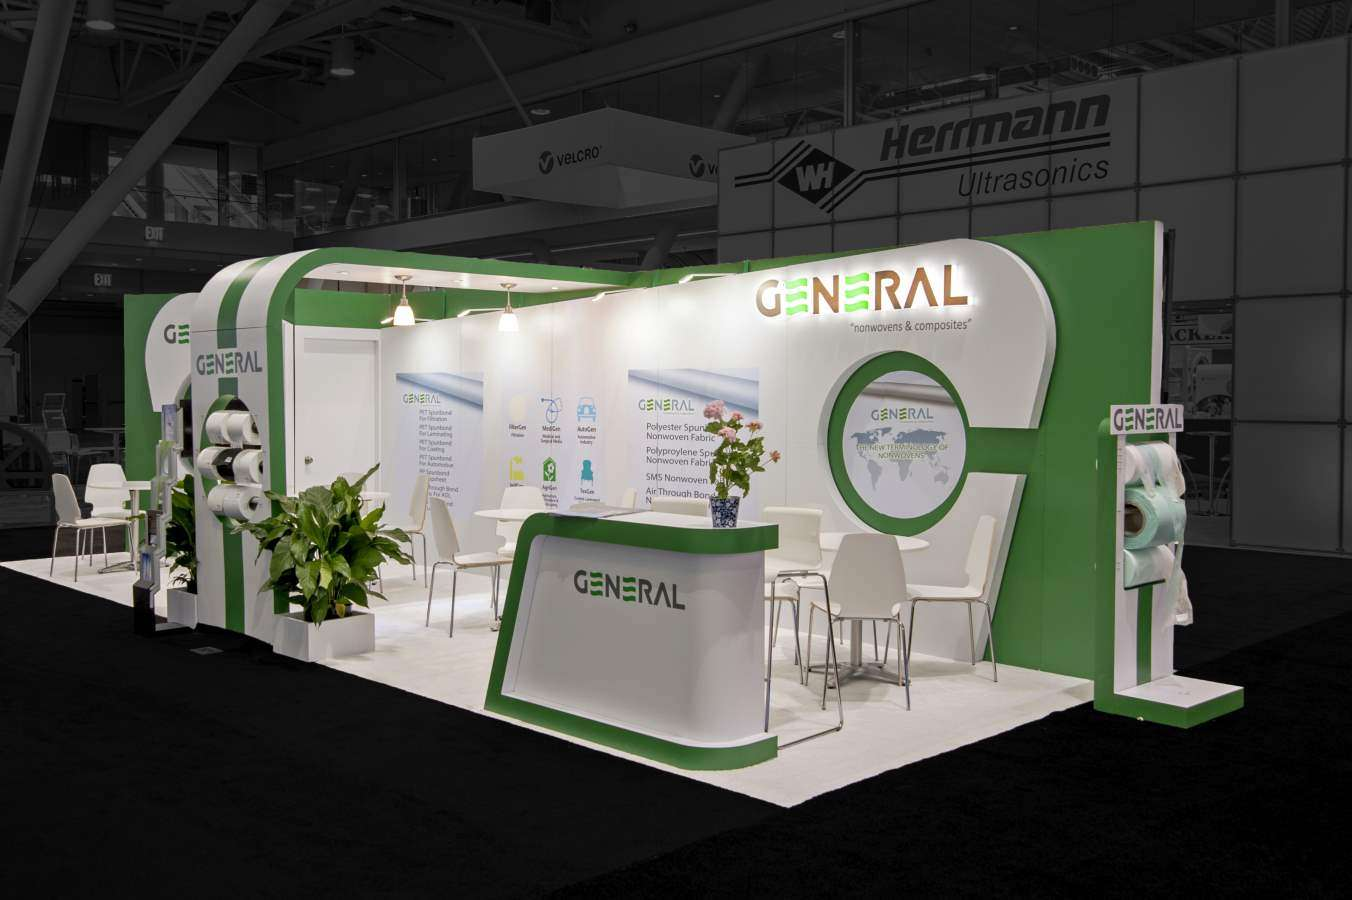 10x30 custom exhibition stand @ IDEA, Boston